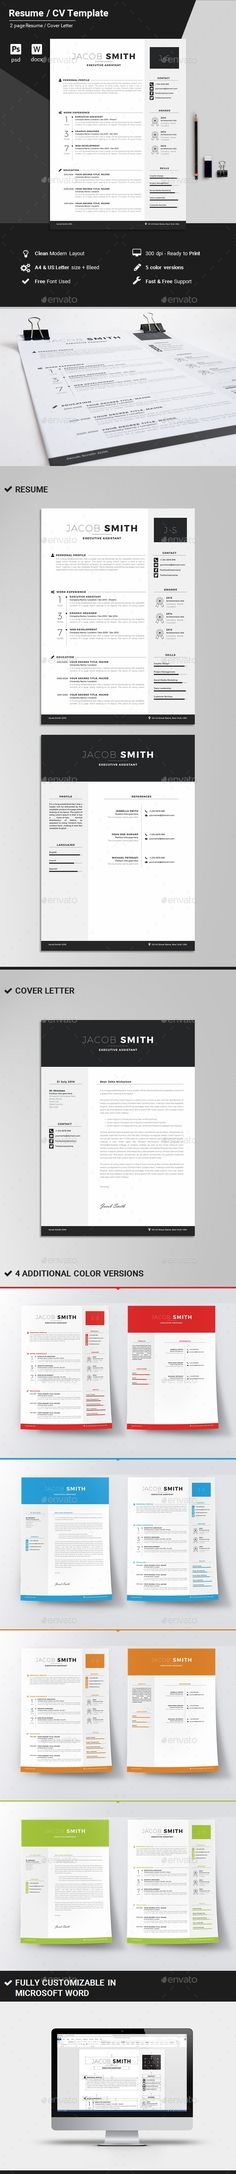 CV Word Ai illustrator, Cv template and Modern resume - resume for word